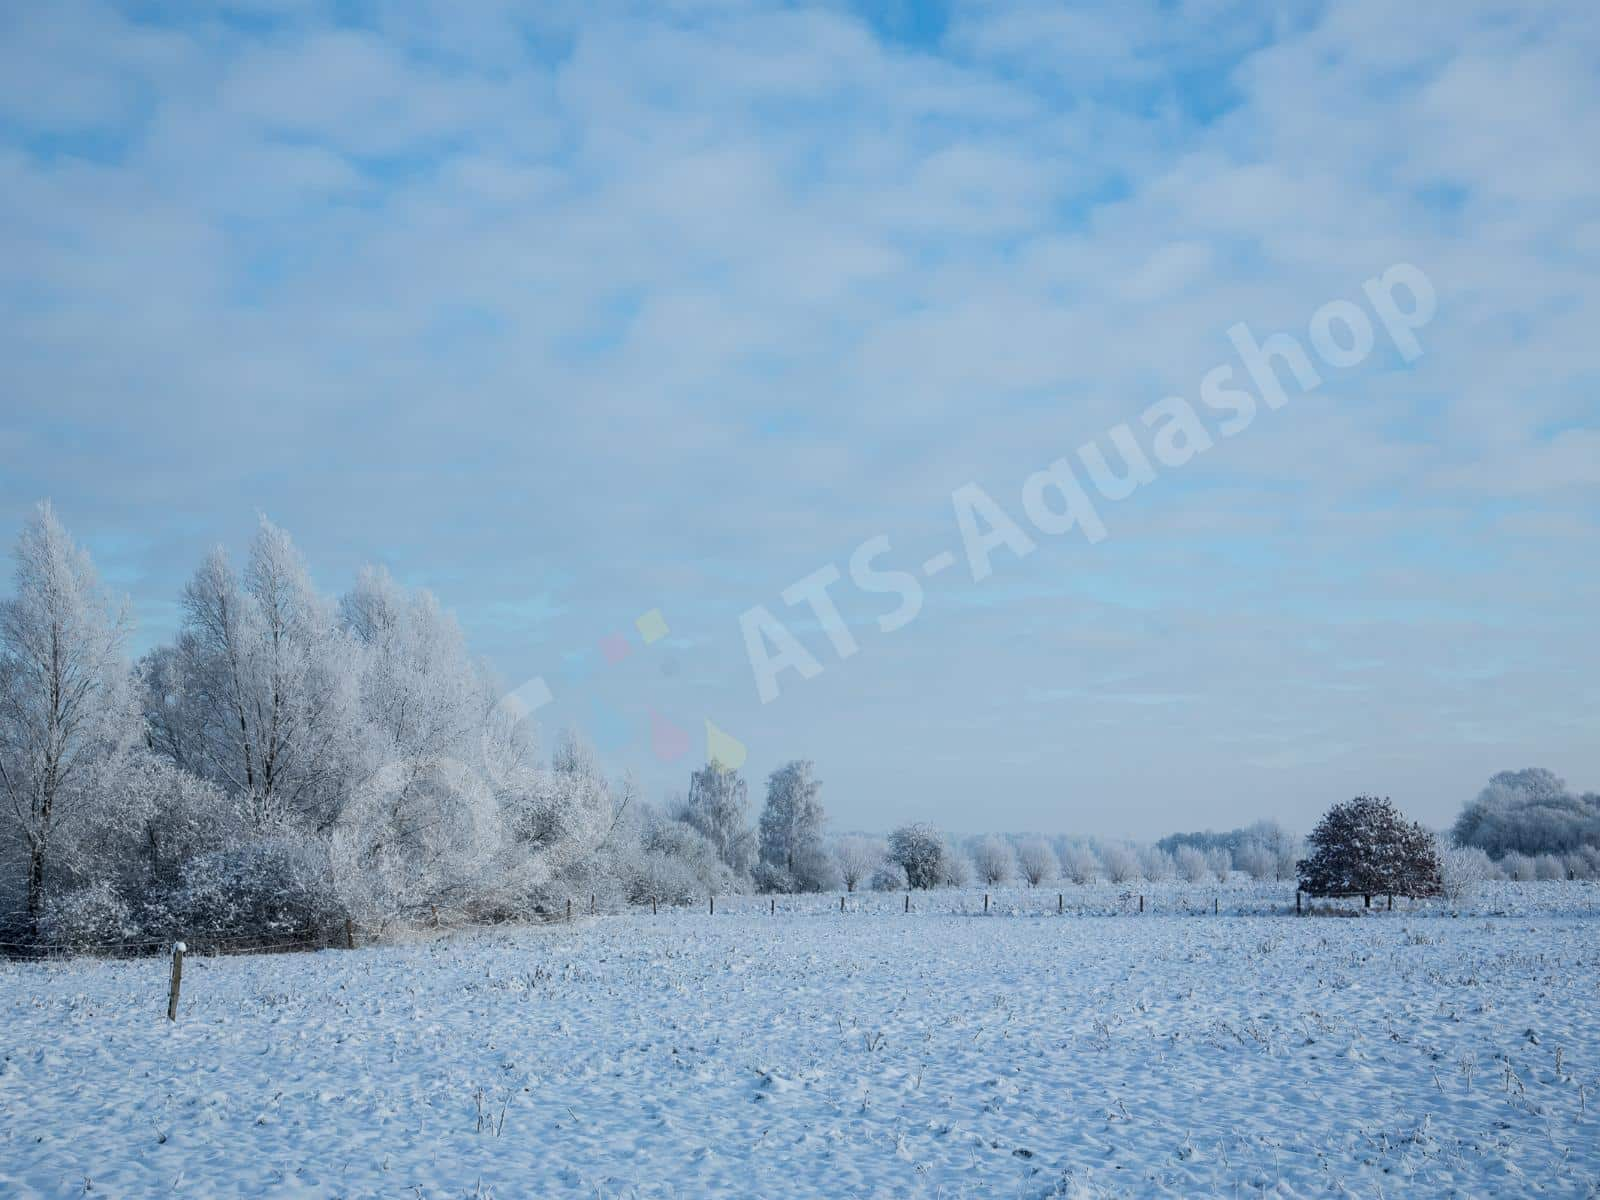 winterlandschaft andreas tanke 0158 9